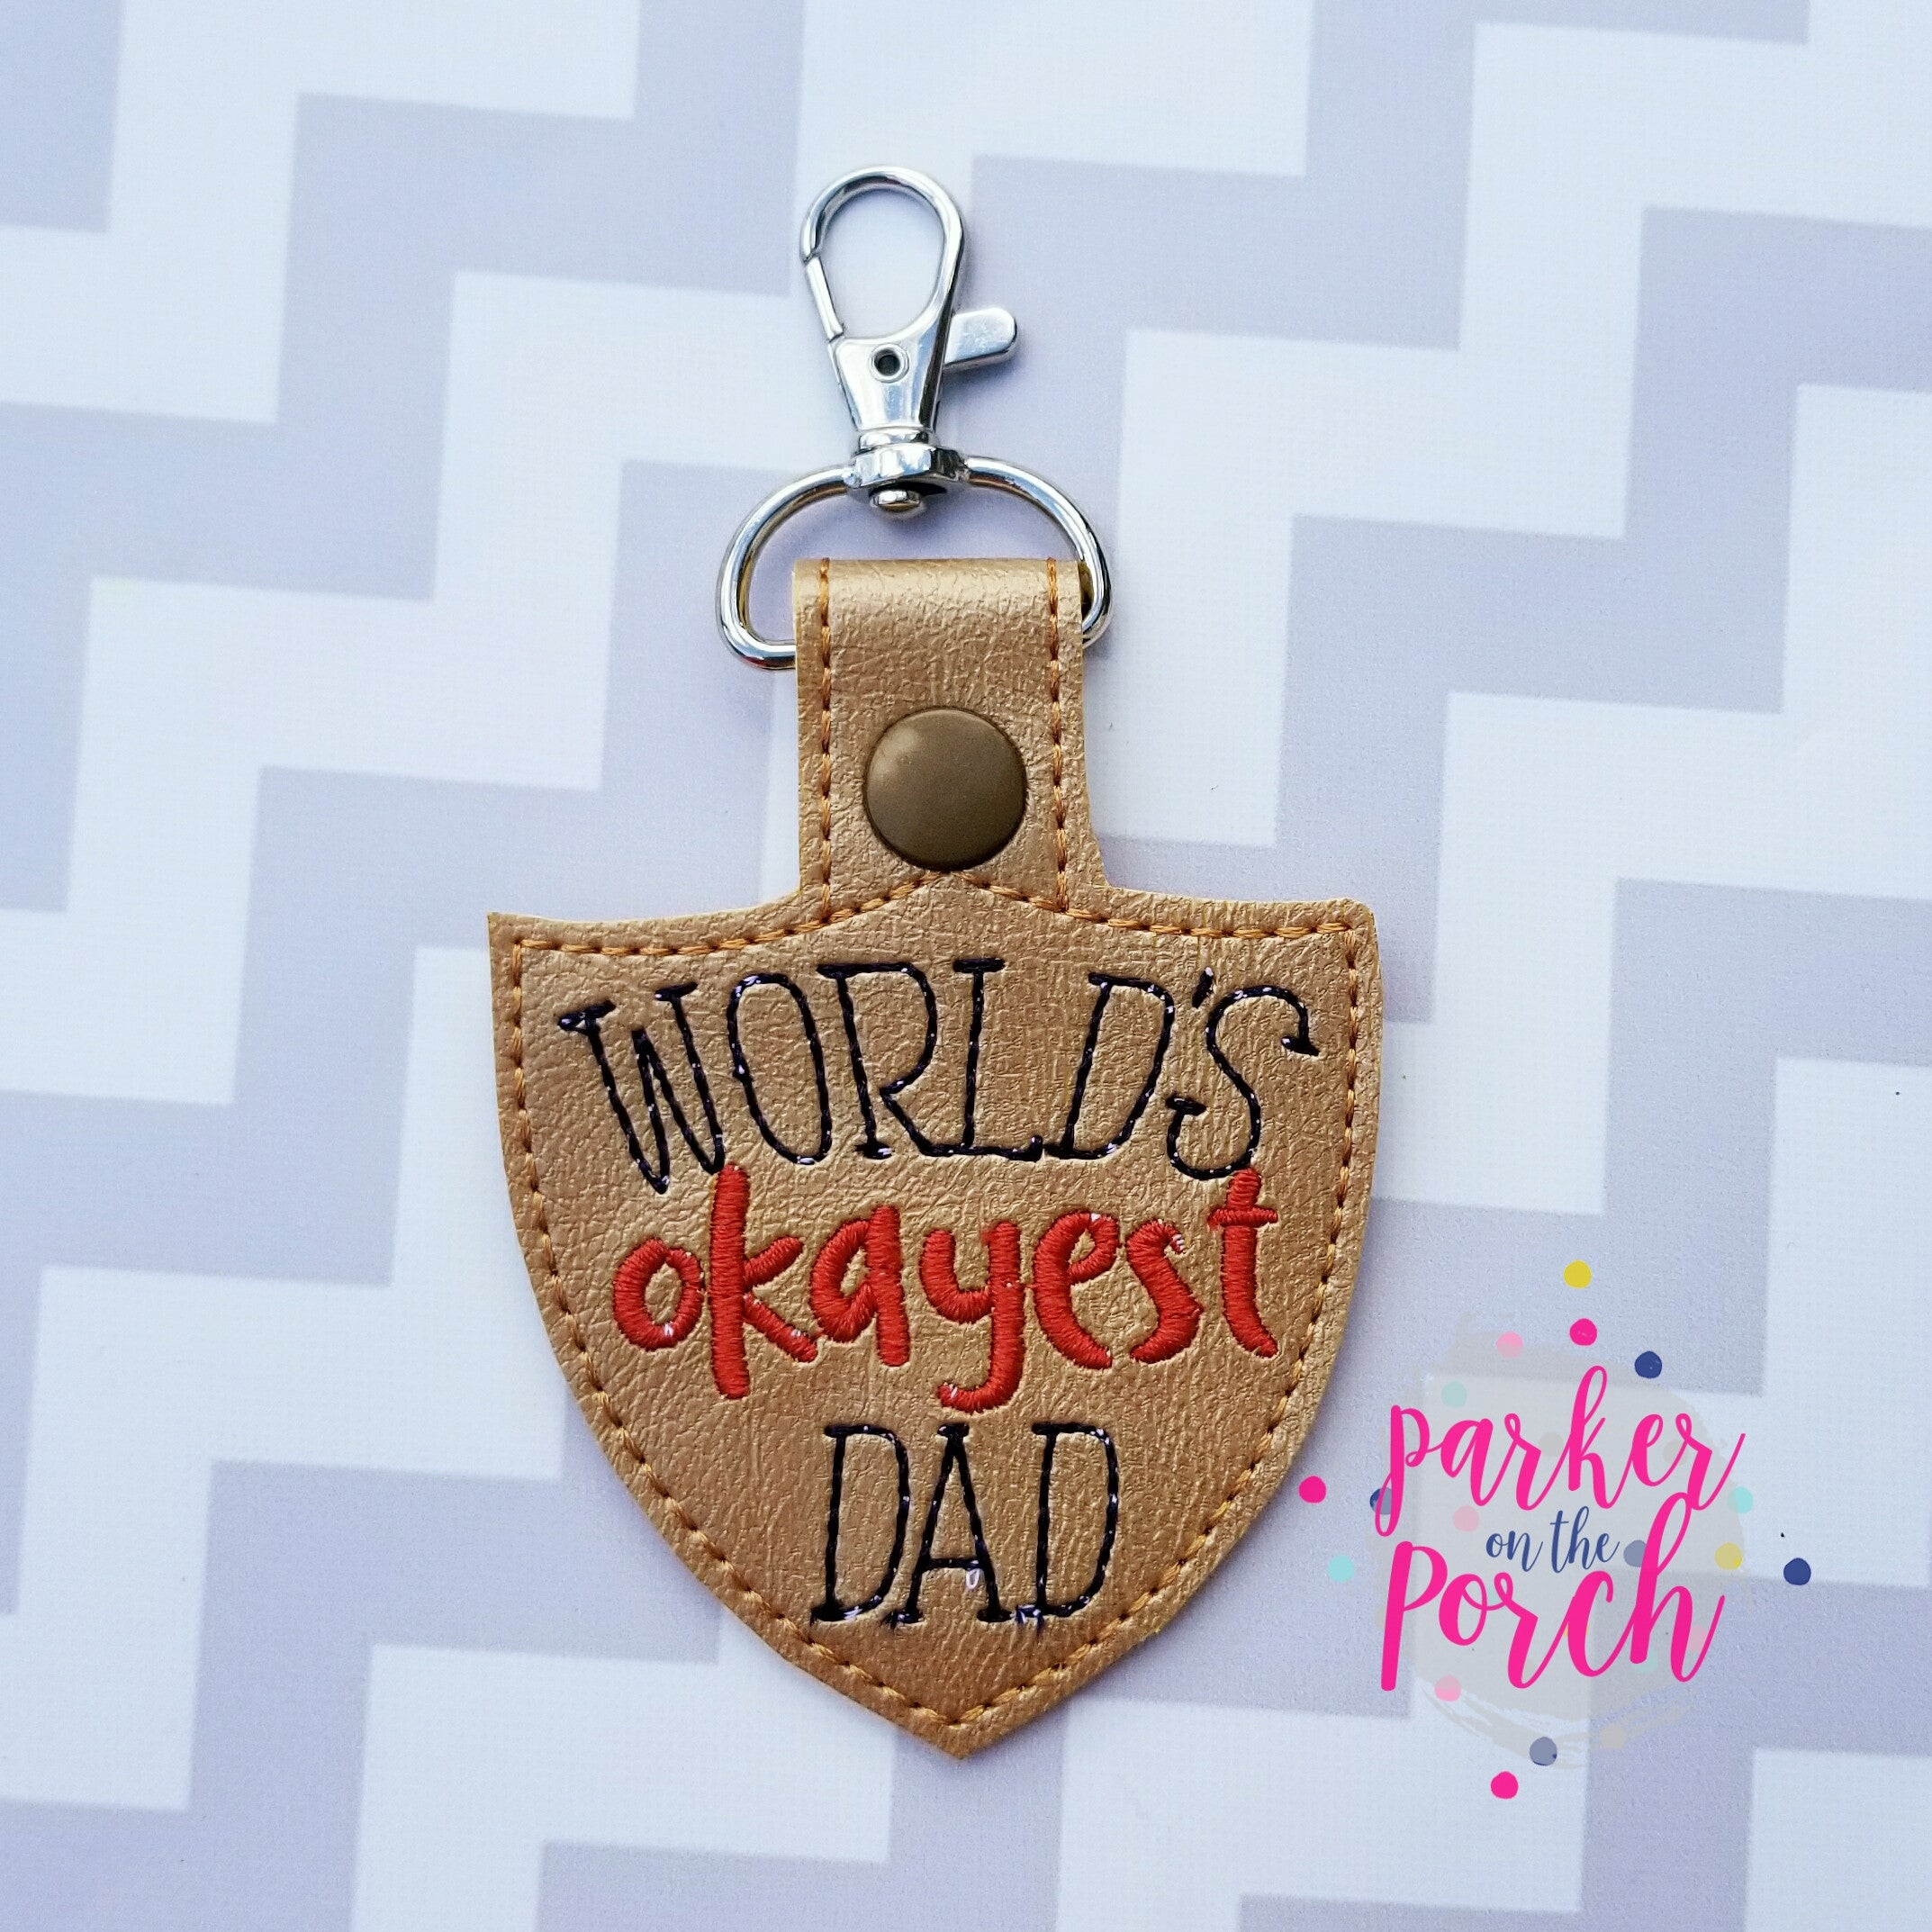 Digital Download- World's Okayest Dad - Pop- Papa Snaptab - in the hoop machine embroidery